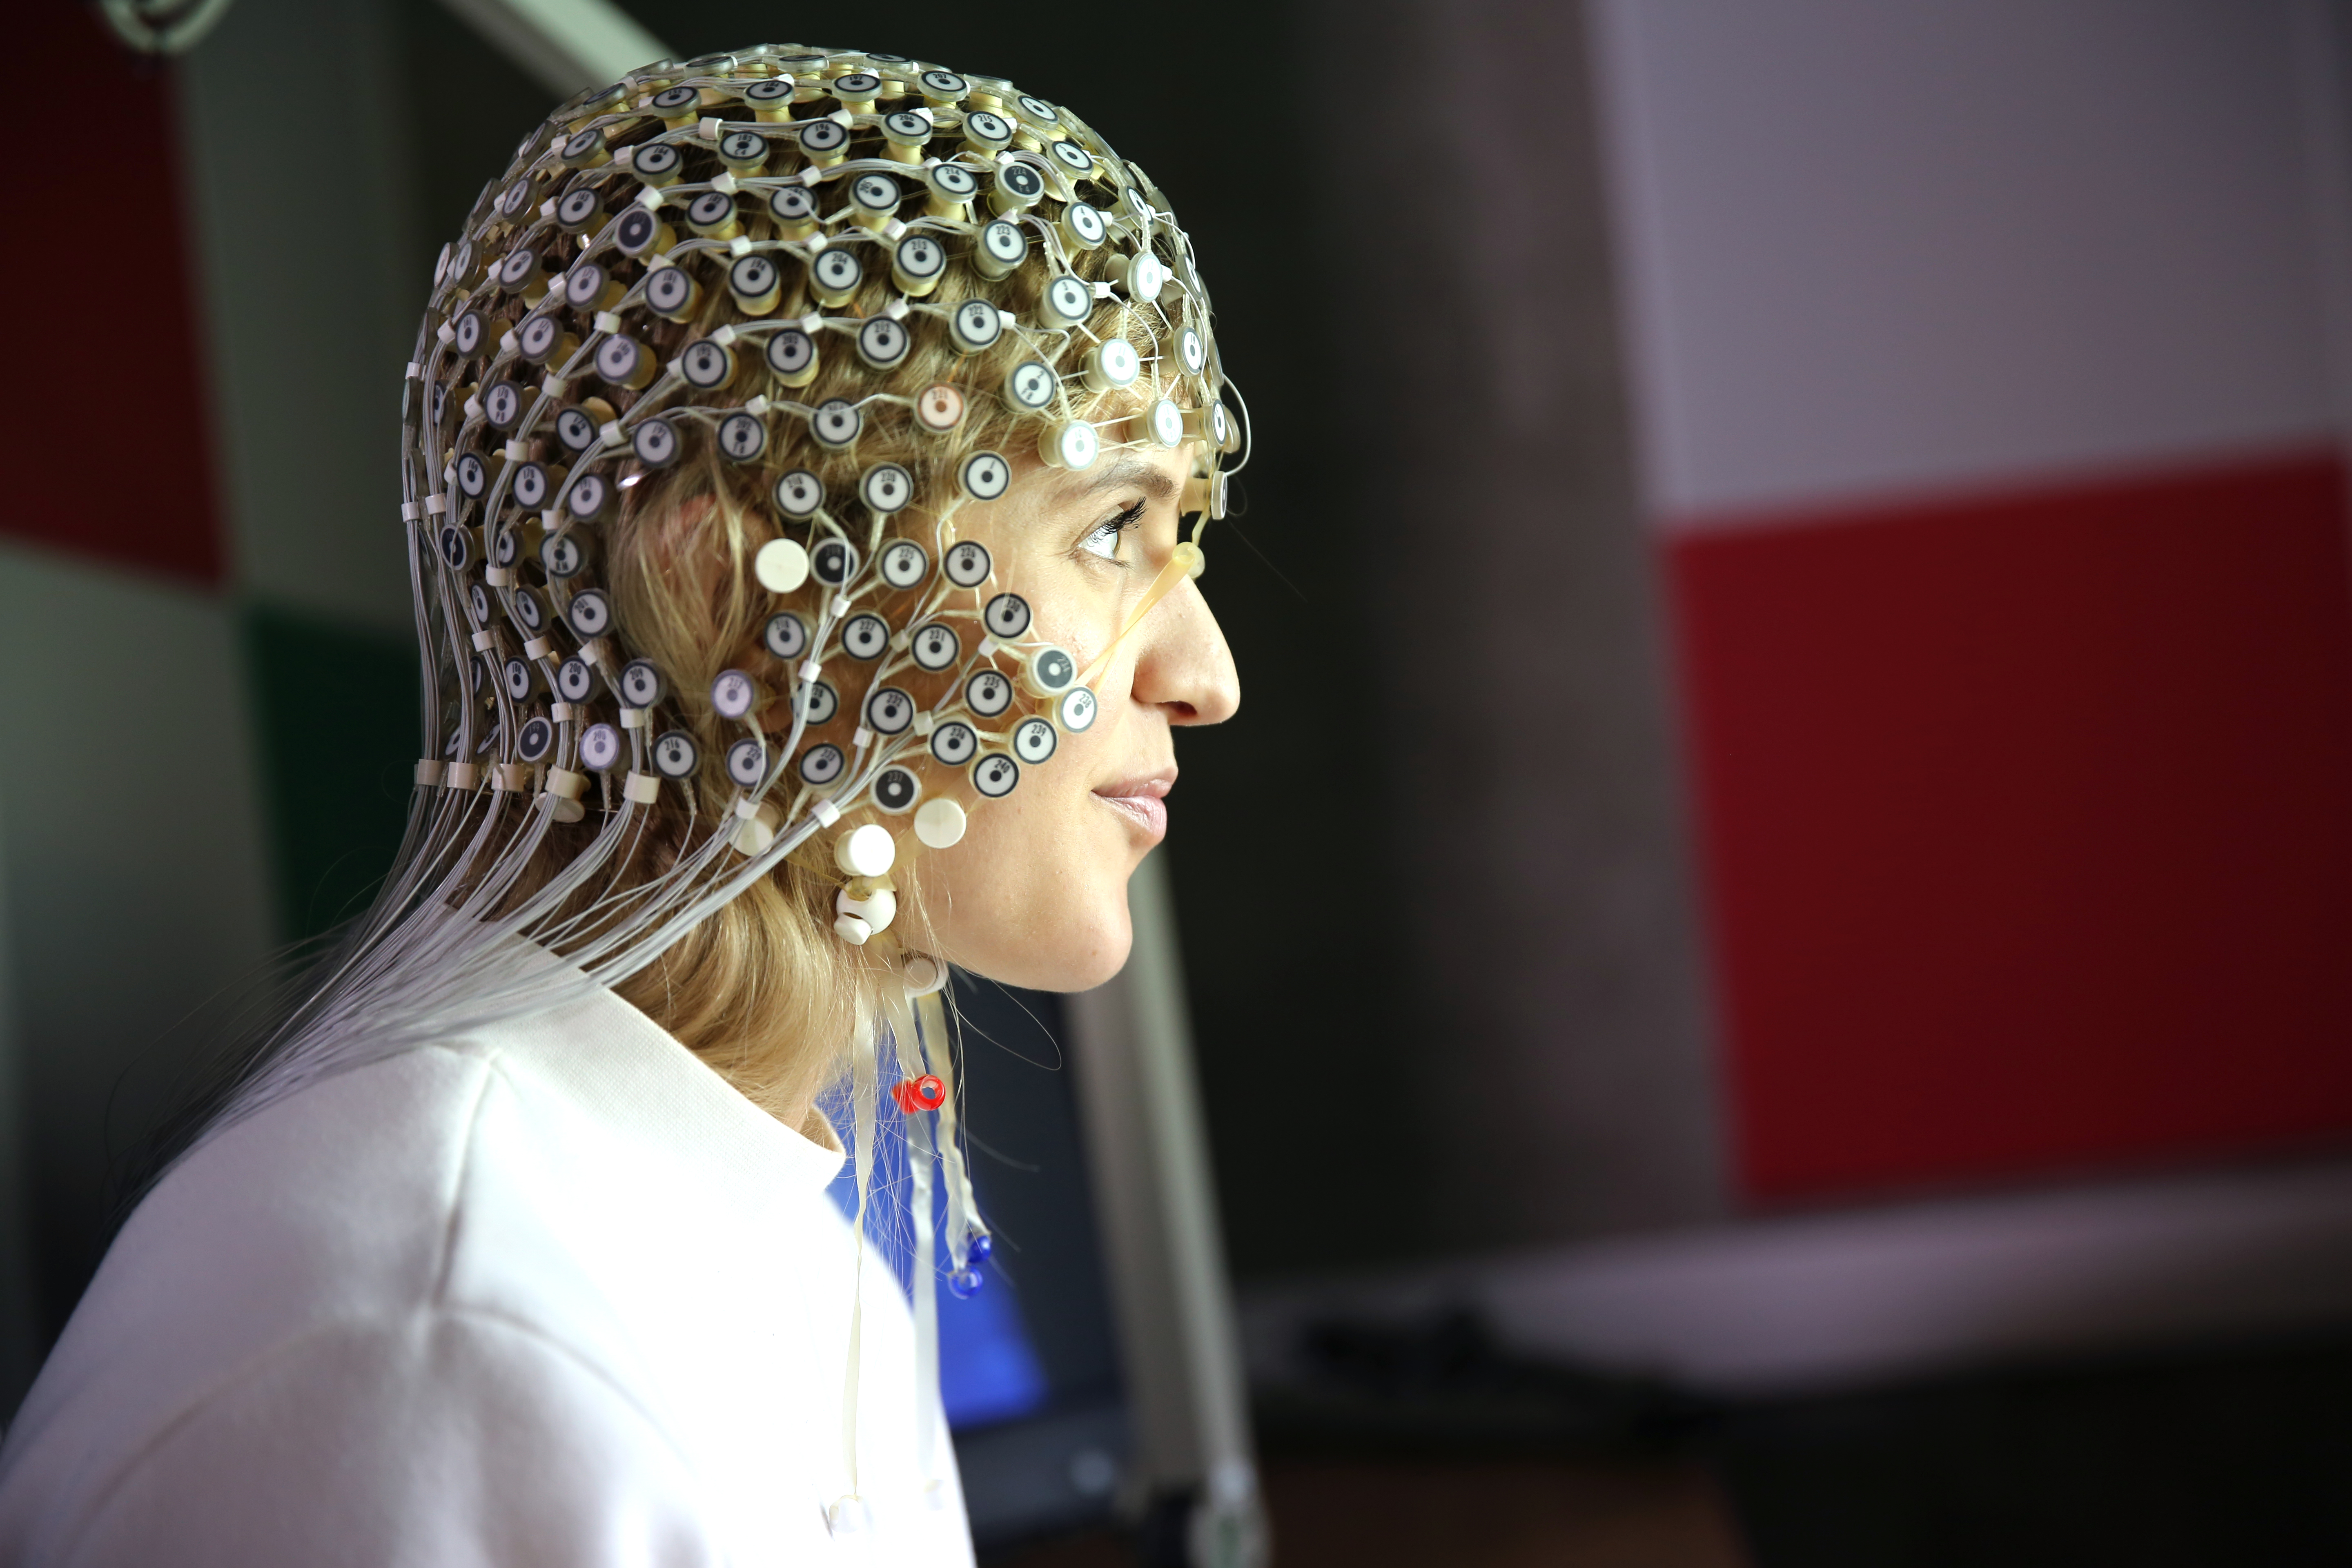 A student in the study wears hundreds of sensors to monitor her brain.